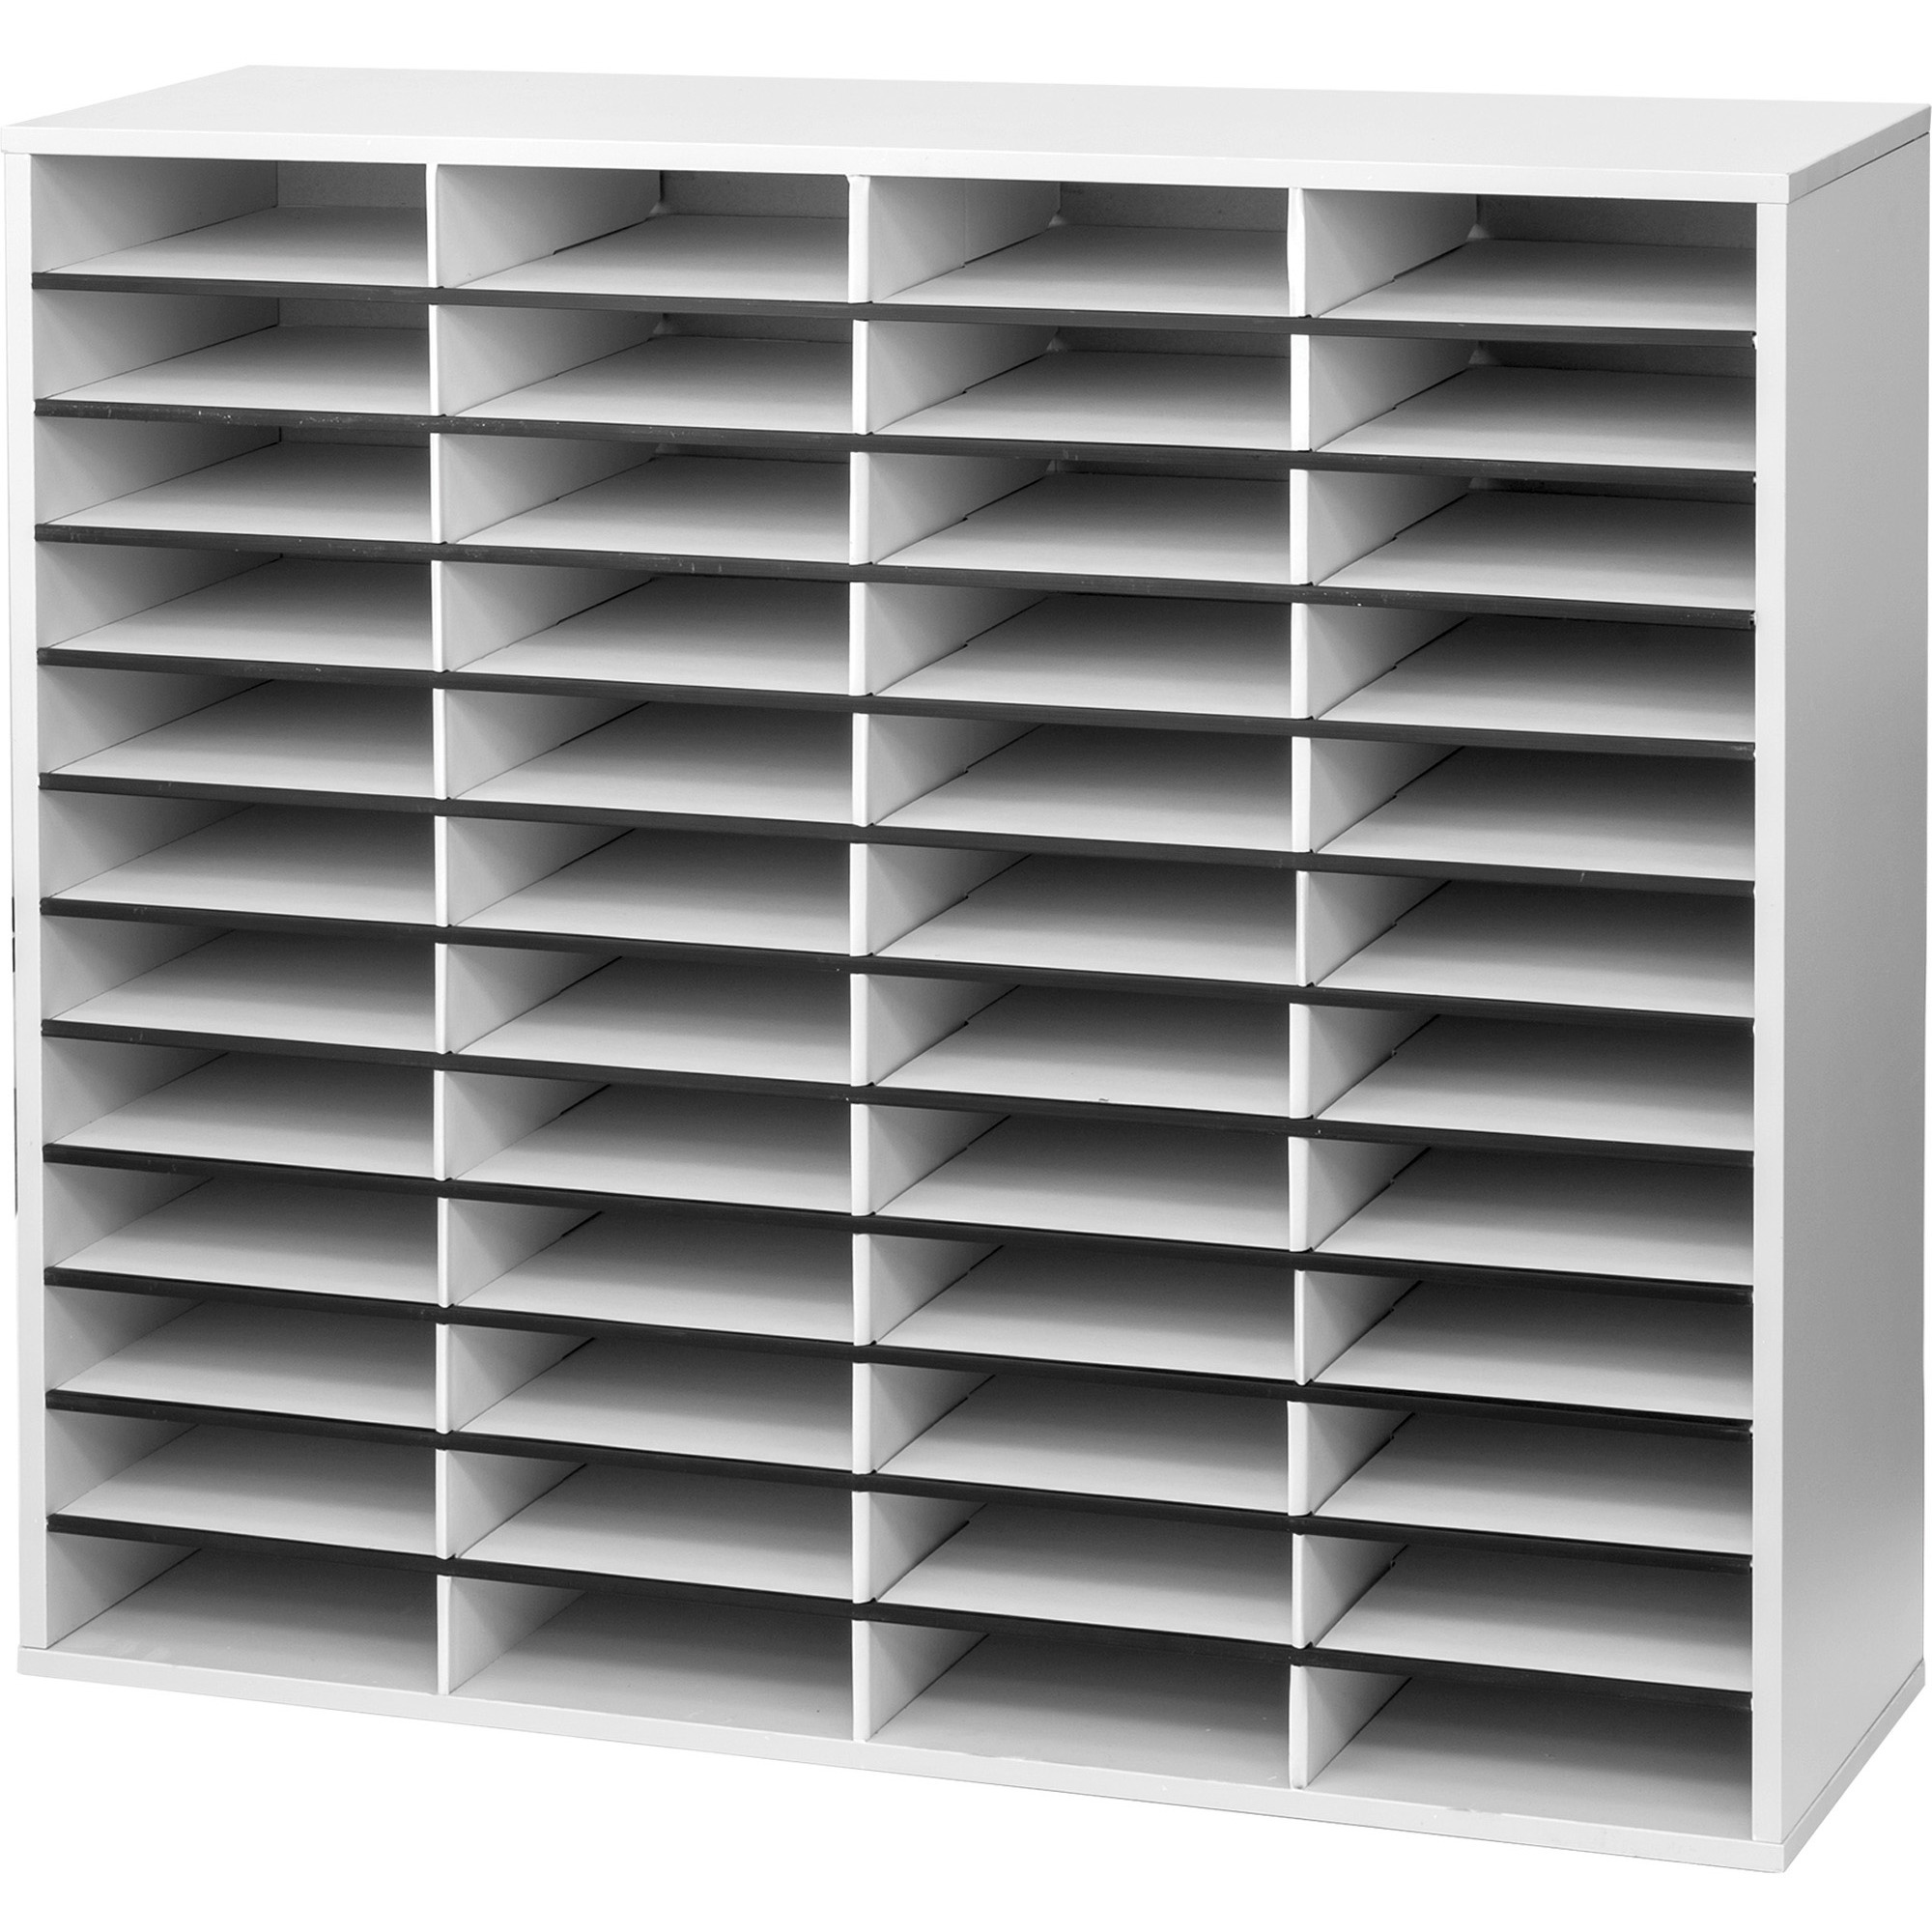 Fellowes, FEL25081, Literature Organizer - 48 Compartment Sorter, Dove Gray, 1 Each, Dove Gray